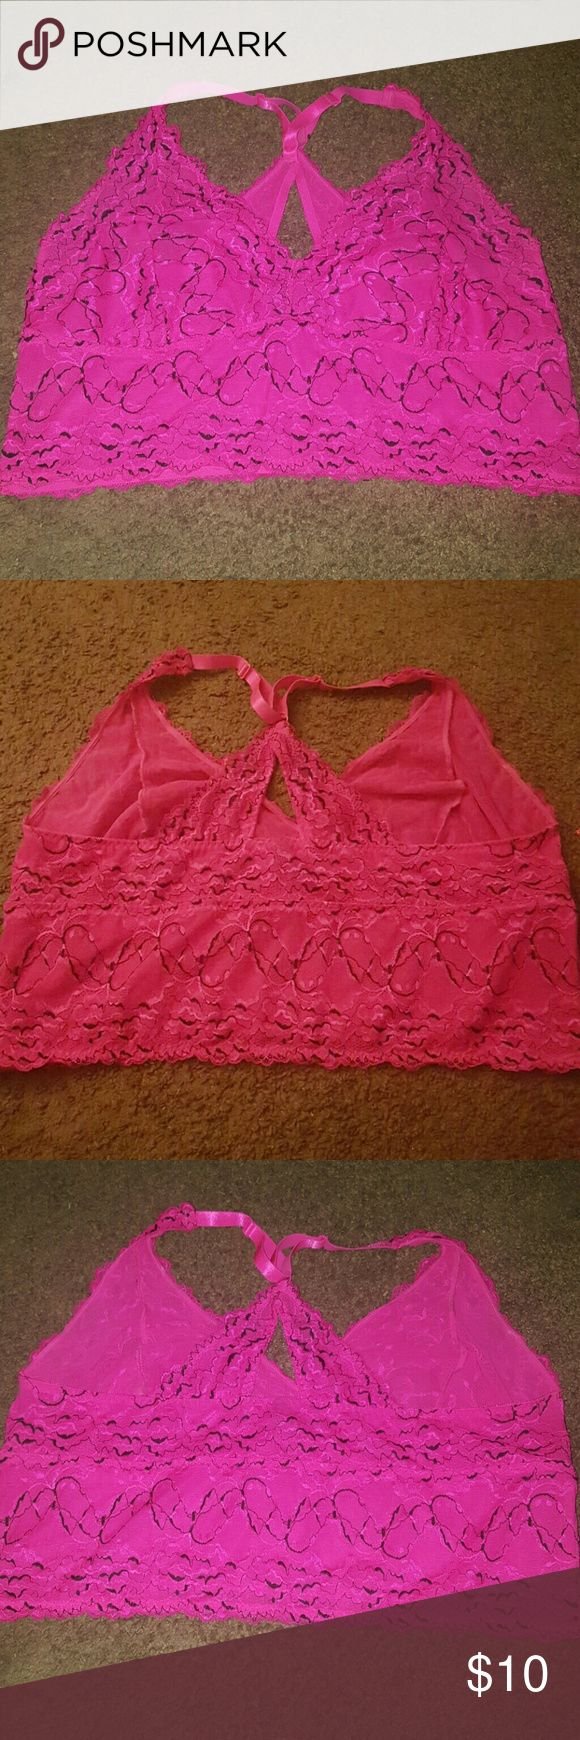 torrid bralette size 4 hit pink bralette by torrid in great condition no rips stains or smells torrid  Intimates & Sleepwear Bras